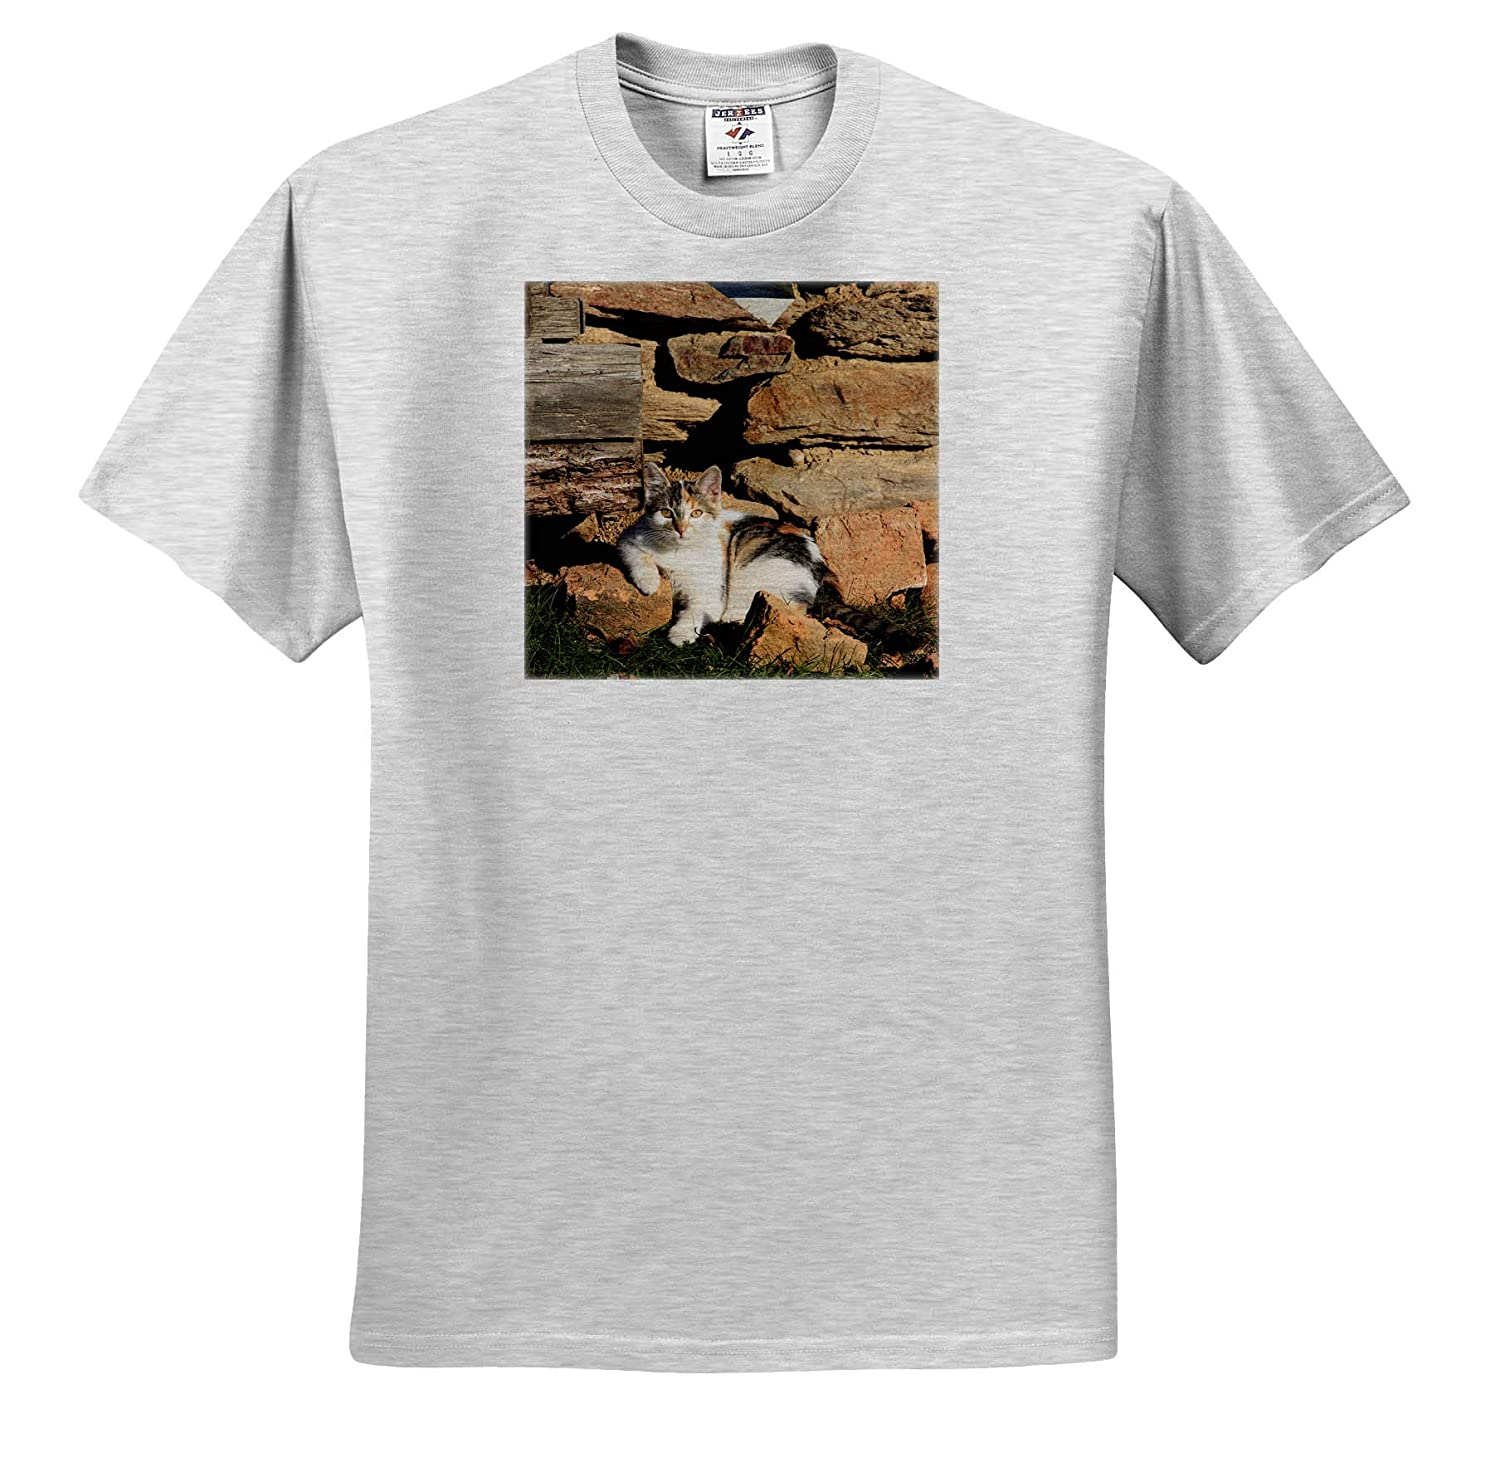 - Adult T-Shirt XL 3dRose Danita Delimont ts/_313848 Cat Leaning Against Stone Wall Cats